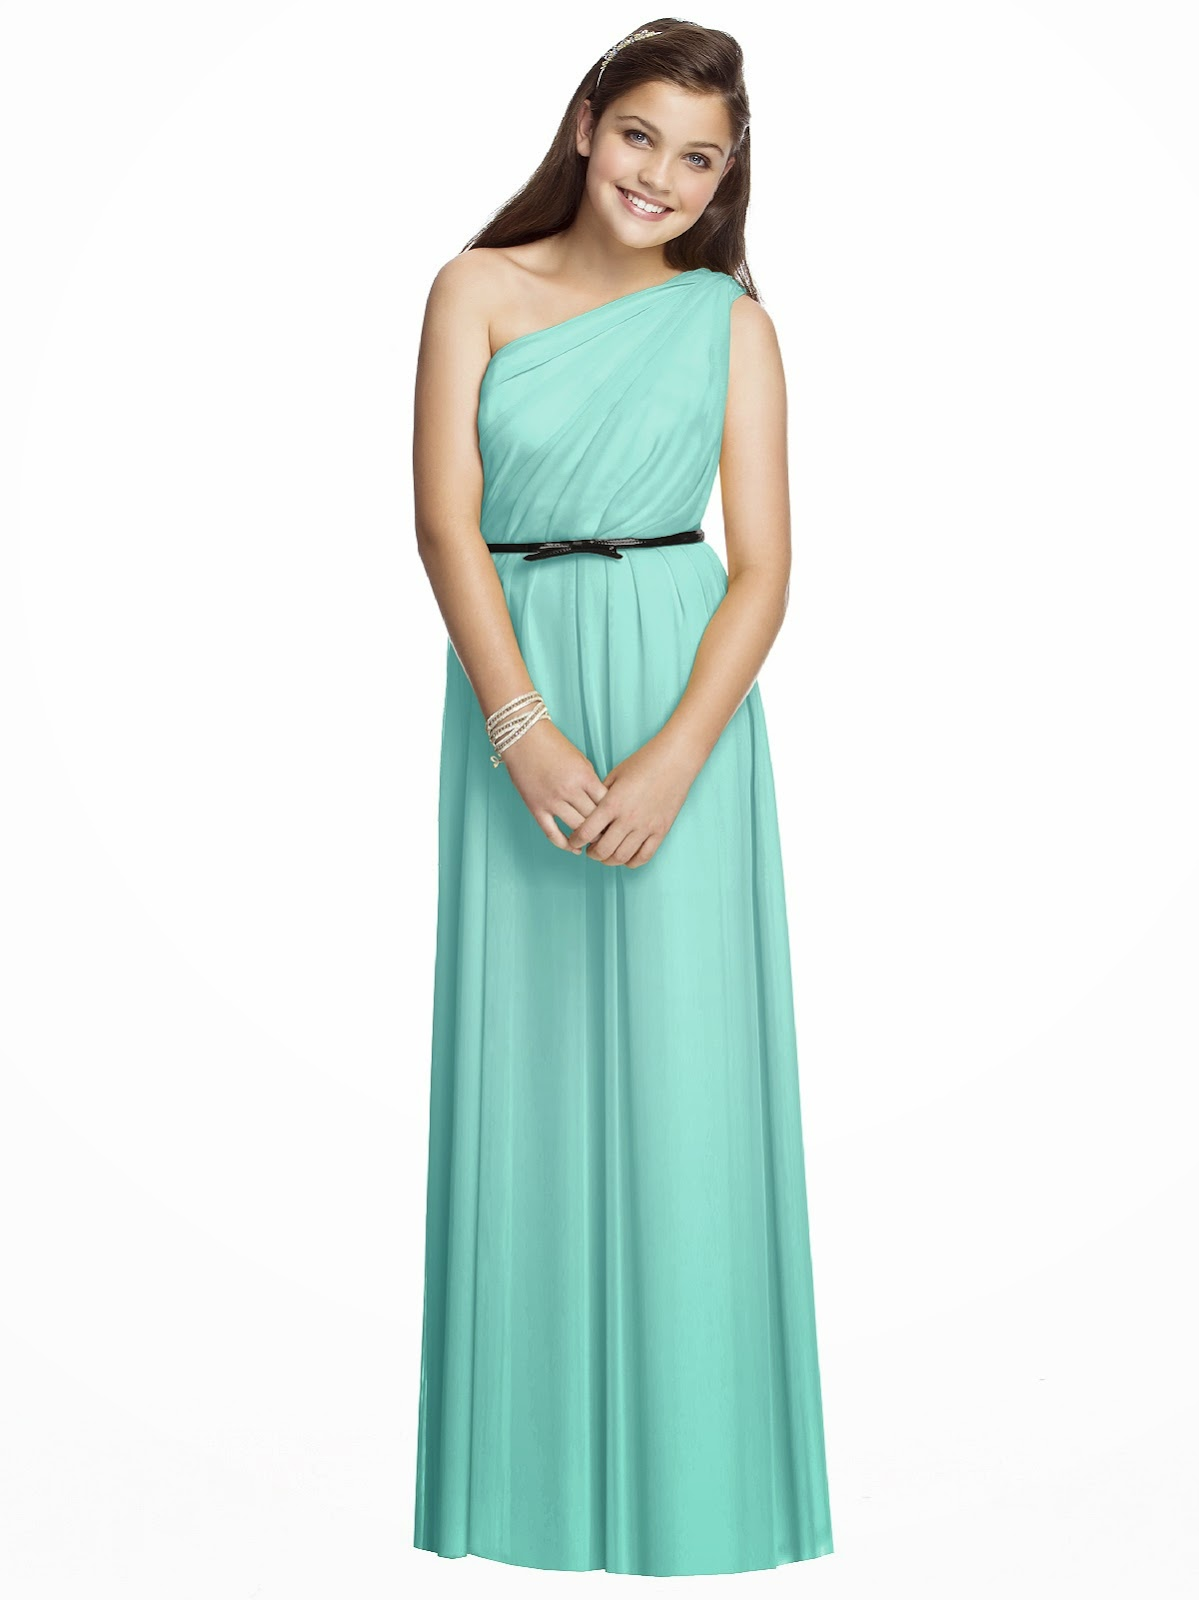 Macy\'s Junior Bridesmaid Dresses | Wedding and bridal